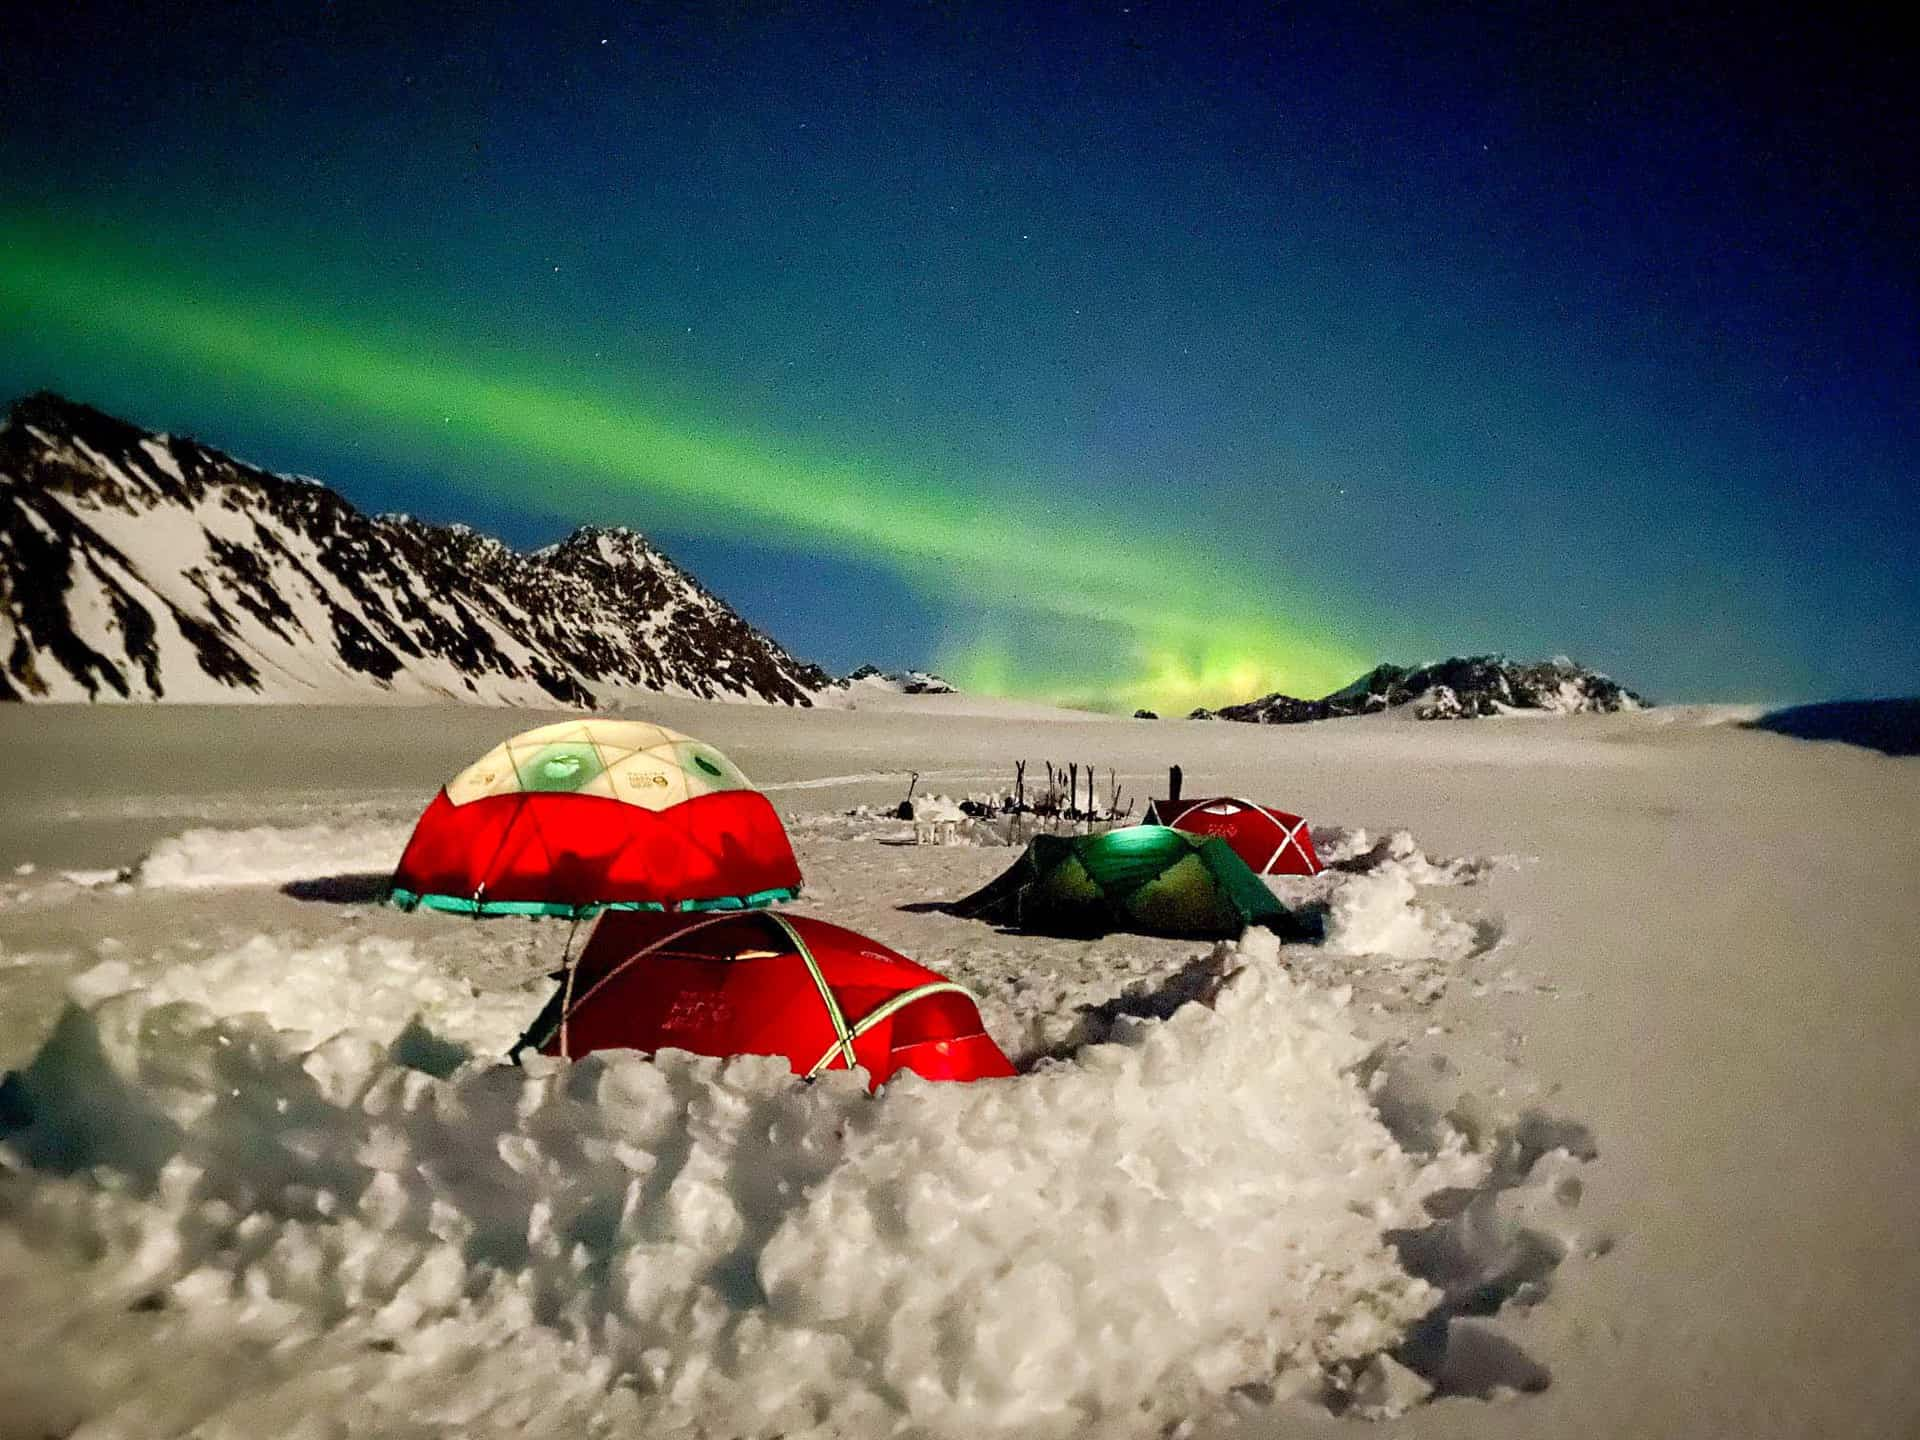 Camping on a glacier in the Chugach Mountains with Pulseline Adventure